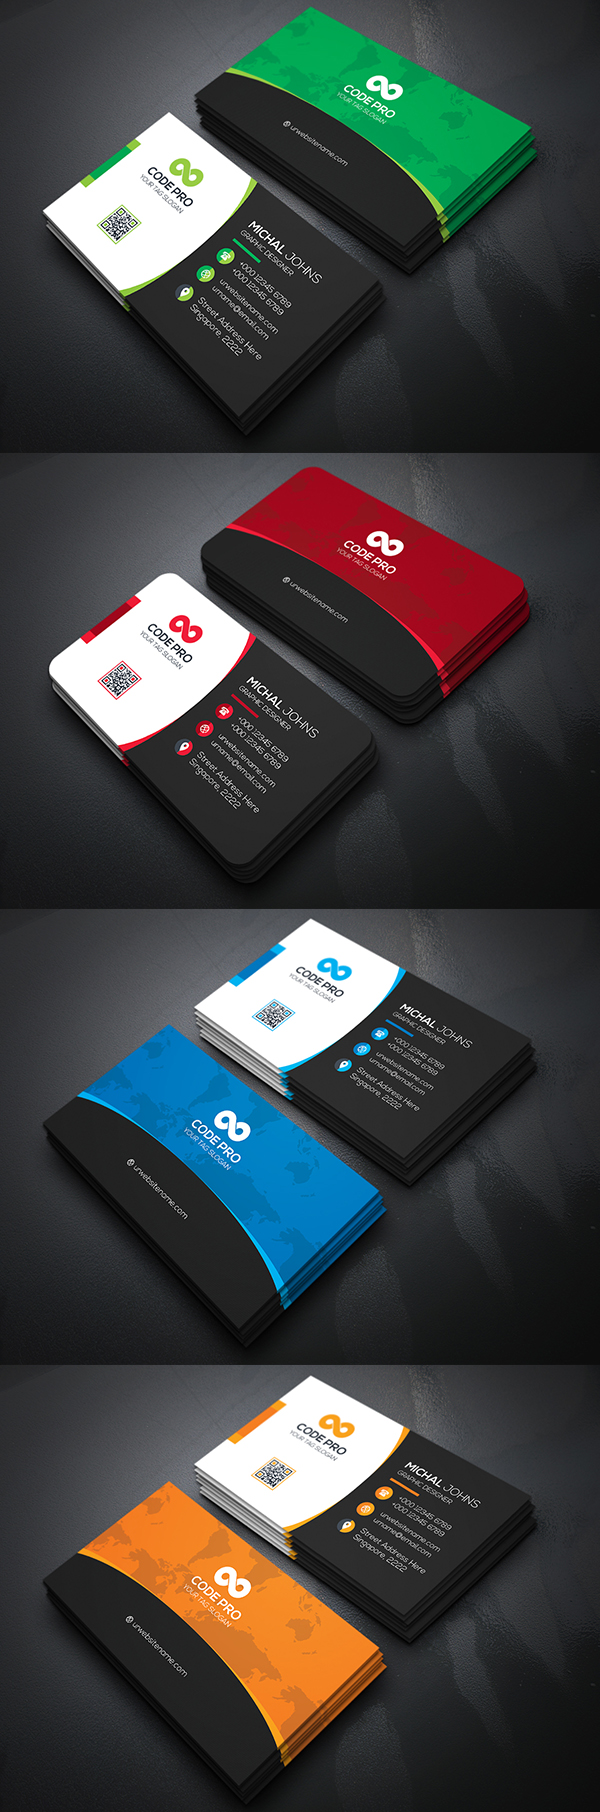 12 Business Card Design